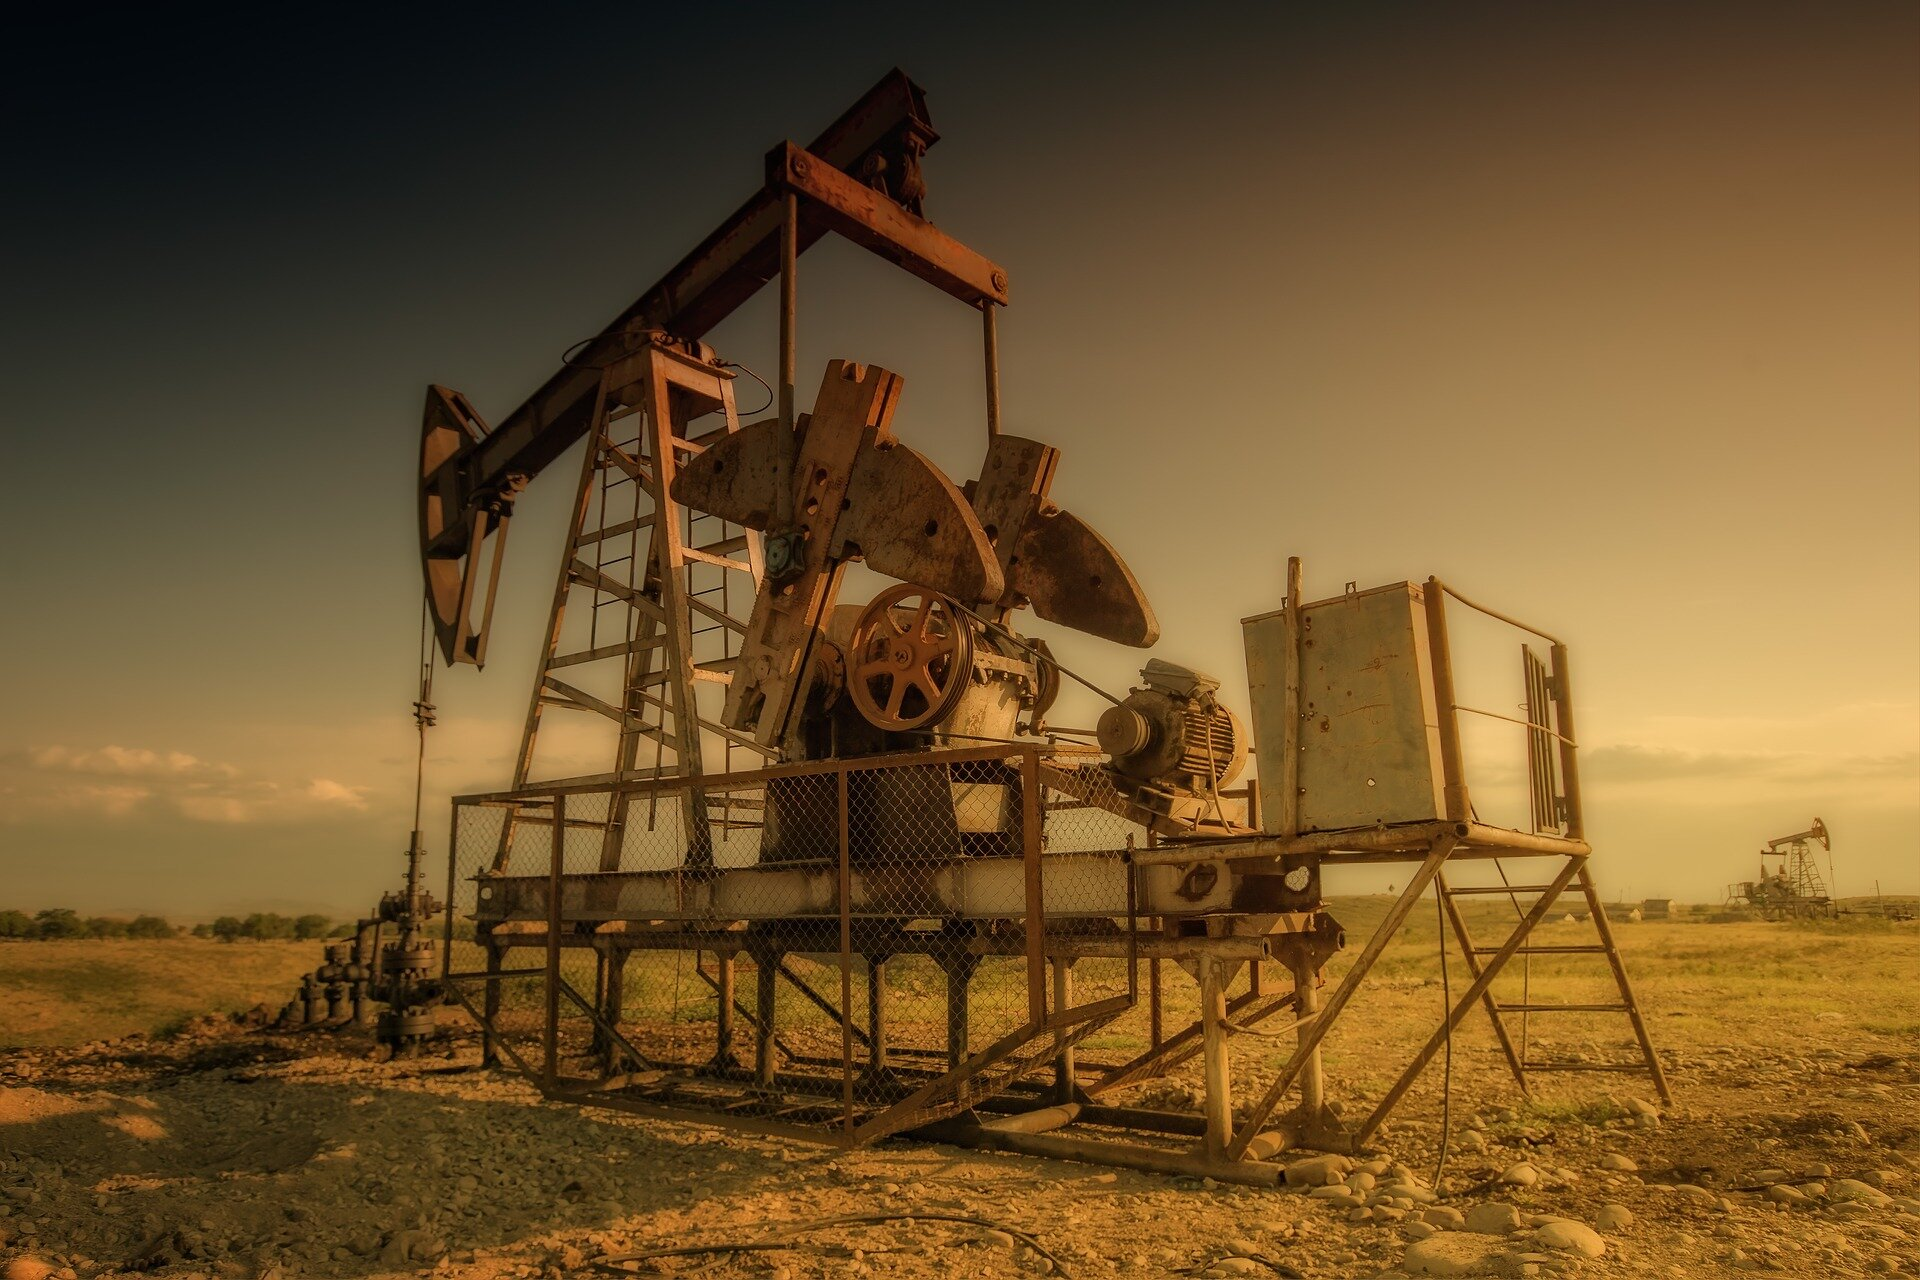 Limiting fossil fuel extraction to keep global warming below 1.5° C target